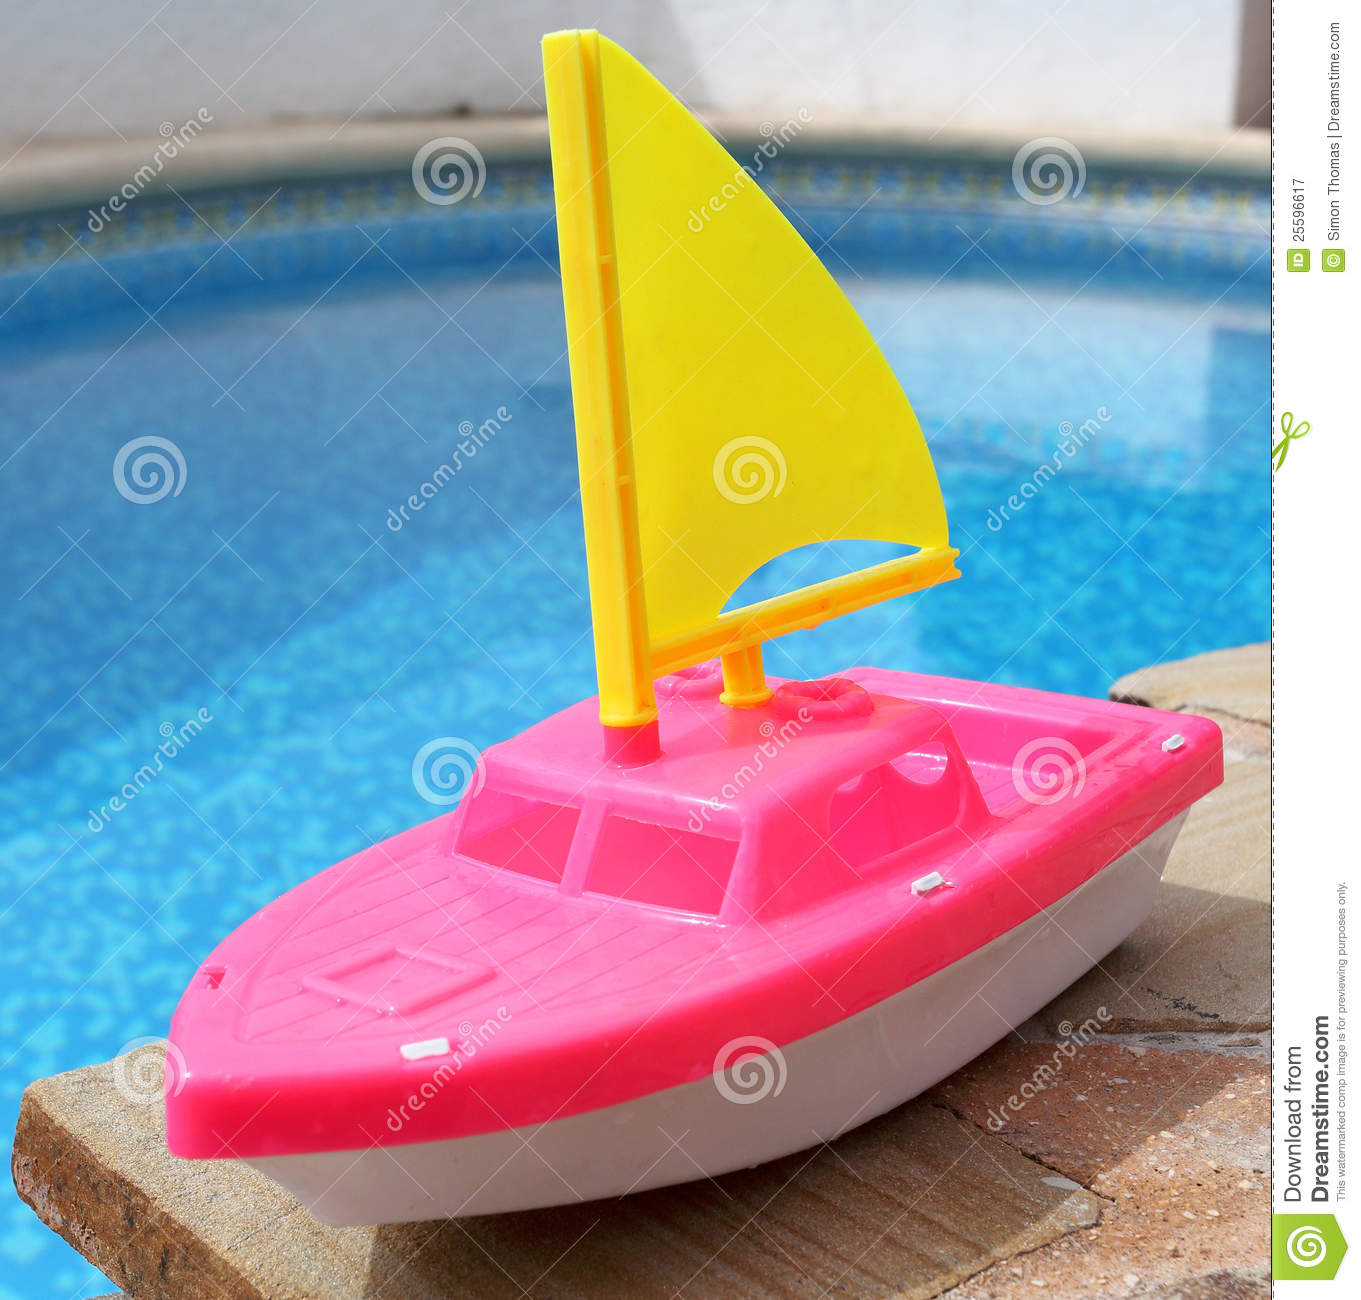 Toy Boat Royalty Free Stock Photography - Image: 25596617